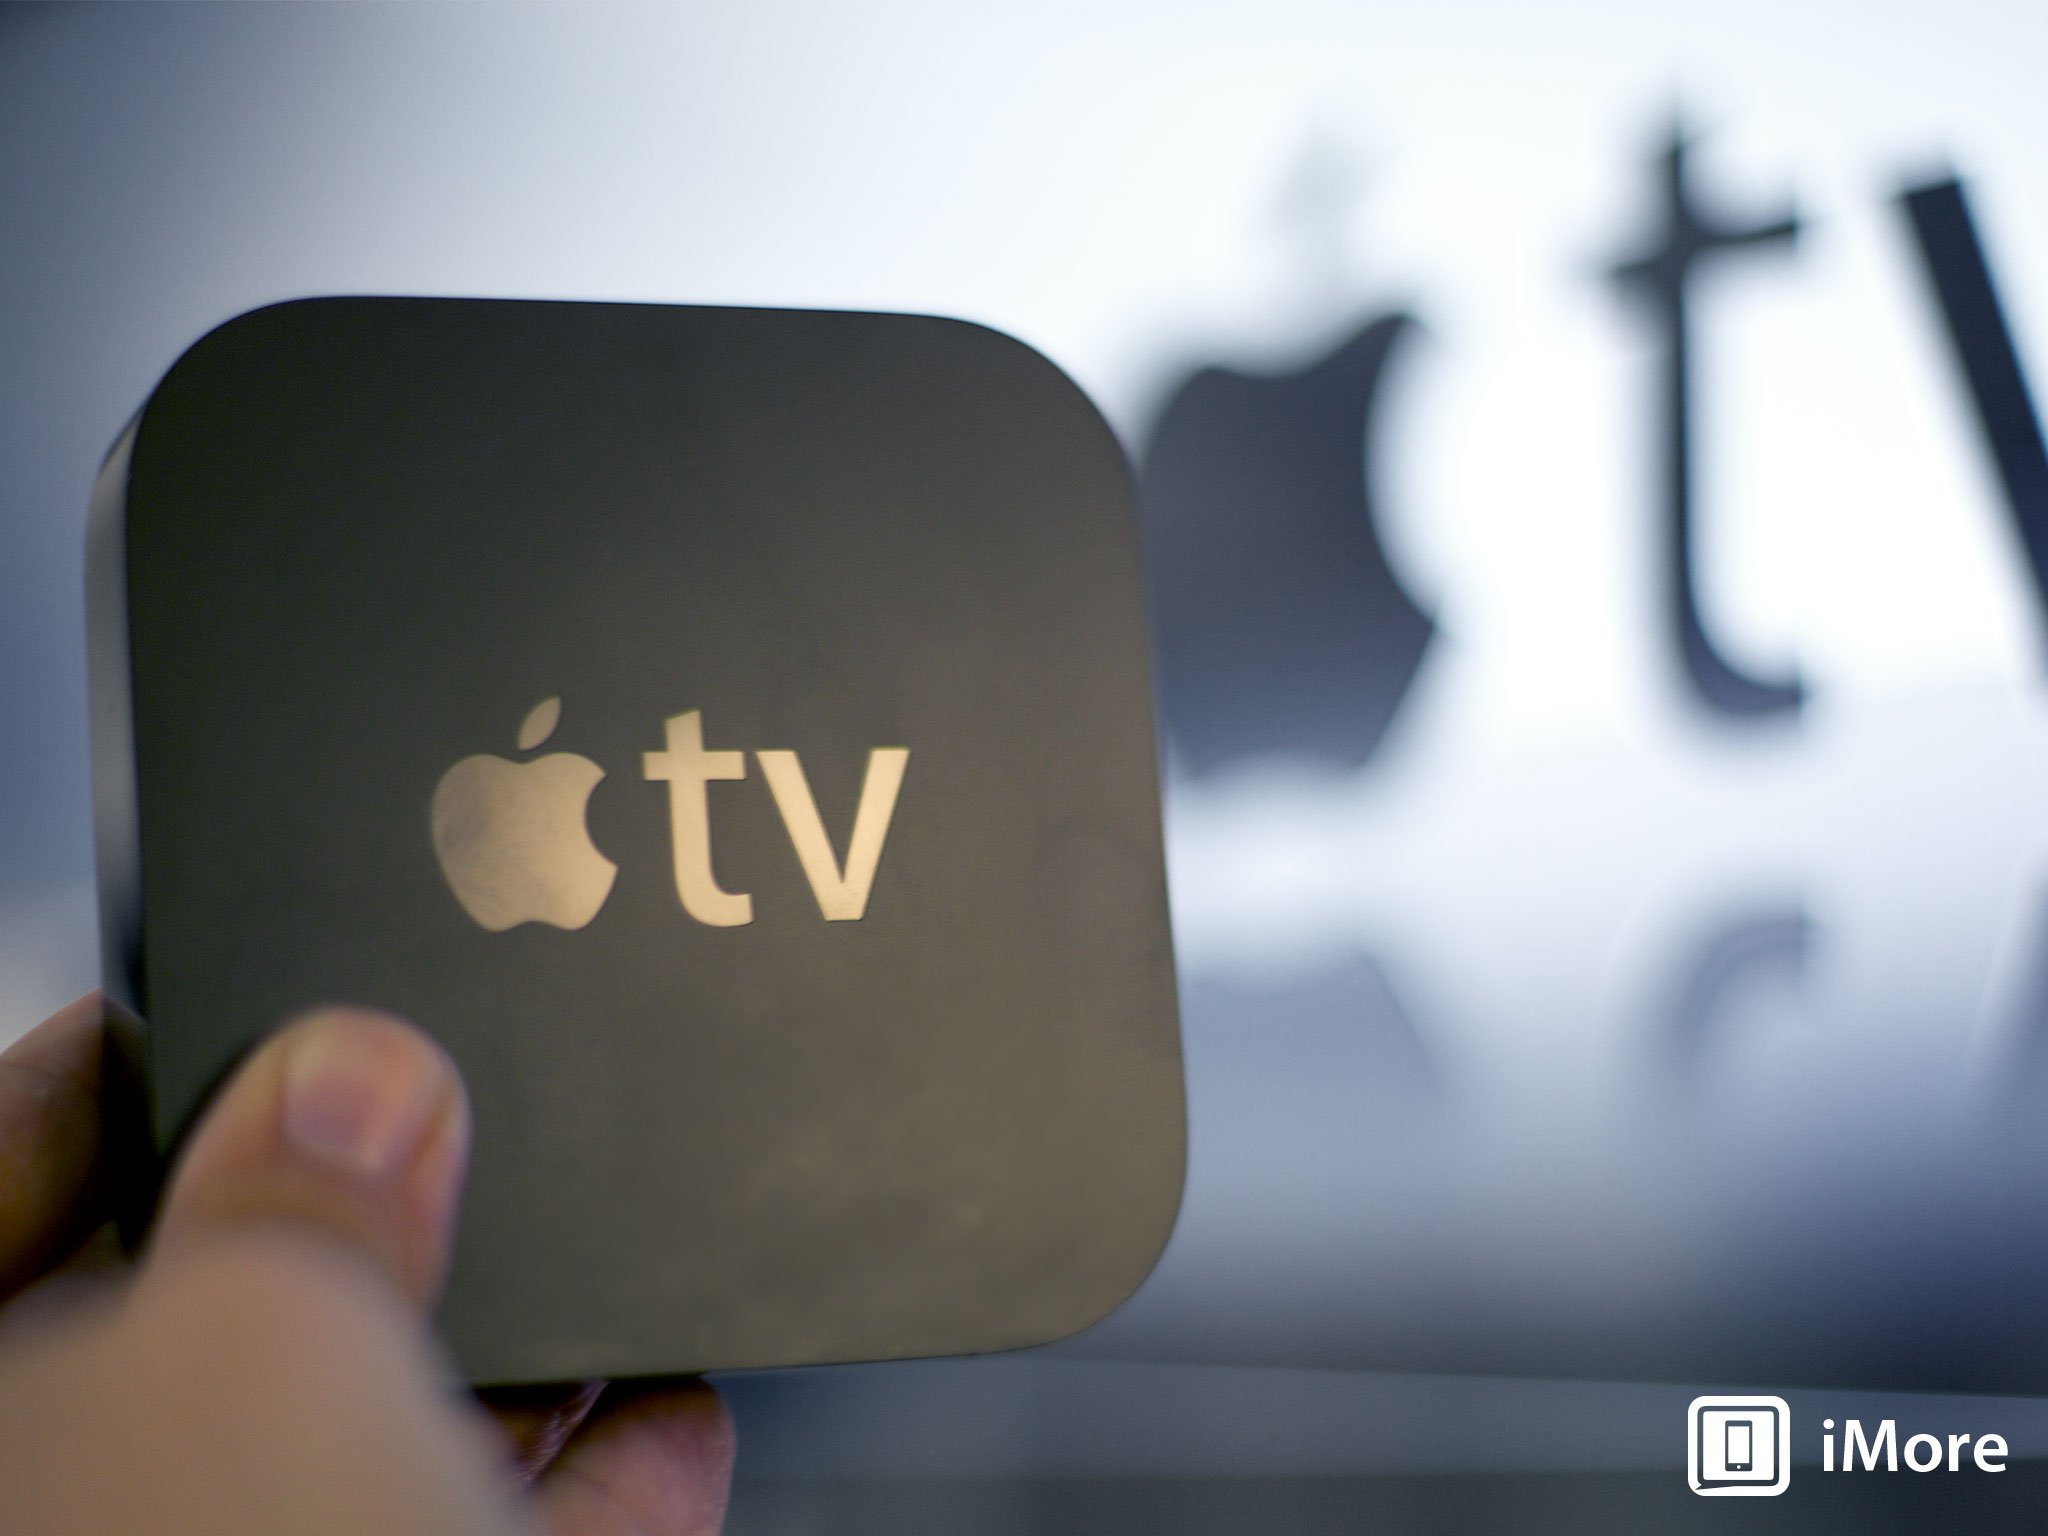 How to restore a 2nd or 3rd generation Apple TV back to factory settings with iTunes